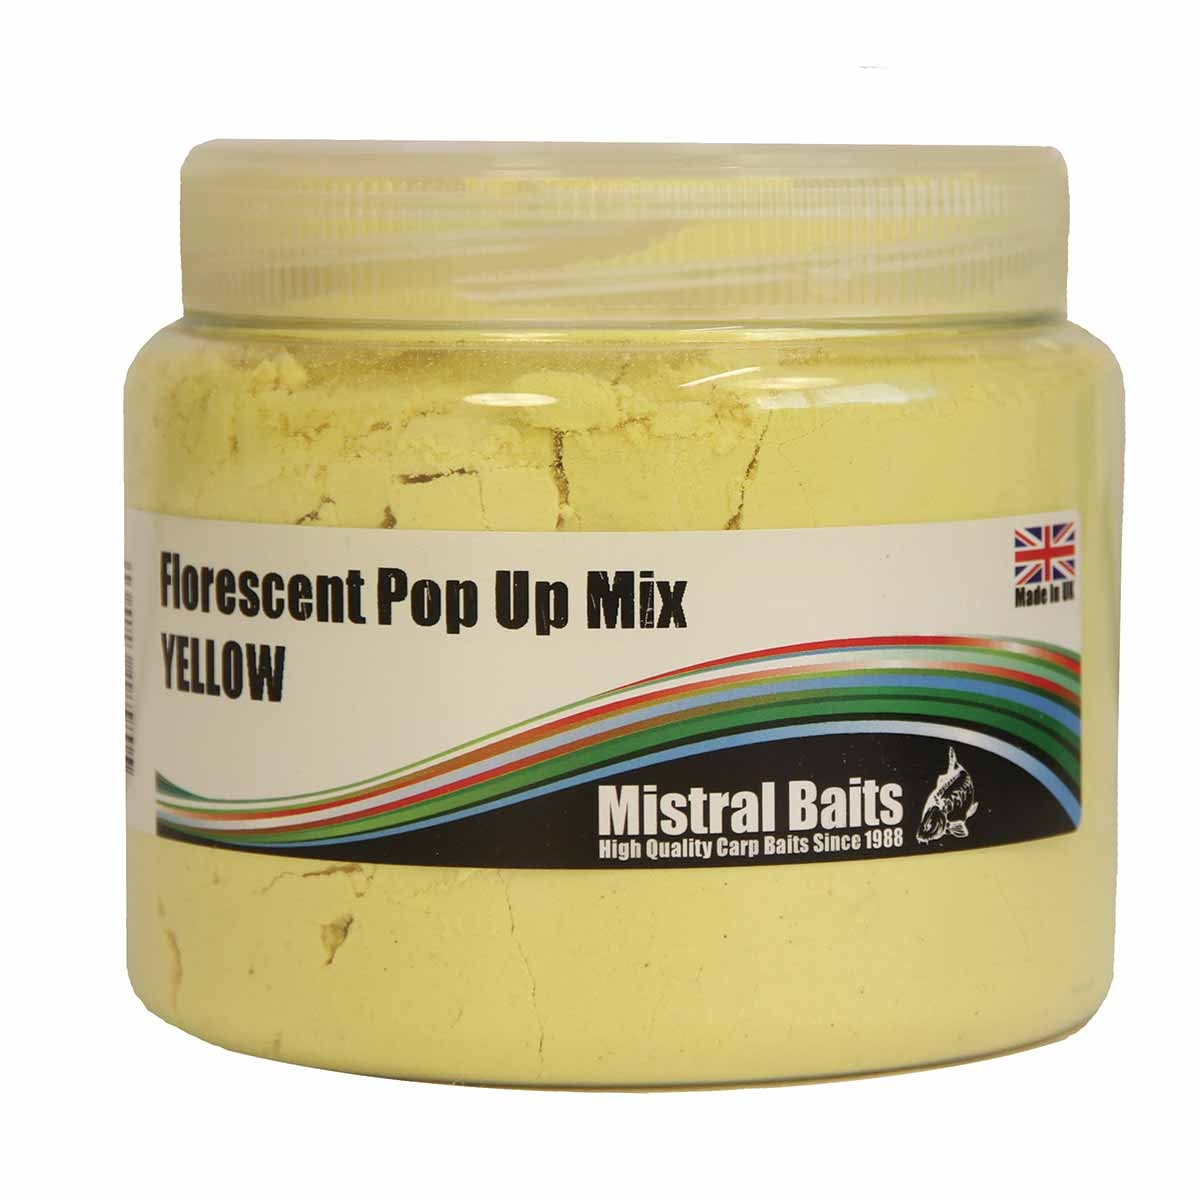 Fluorescent Pop Up Mix Yellow